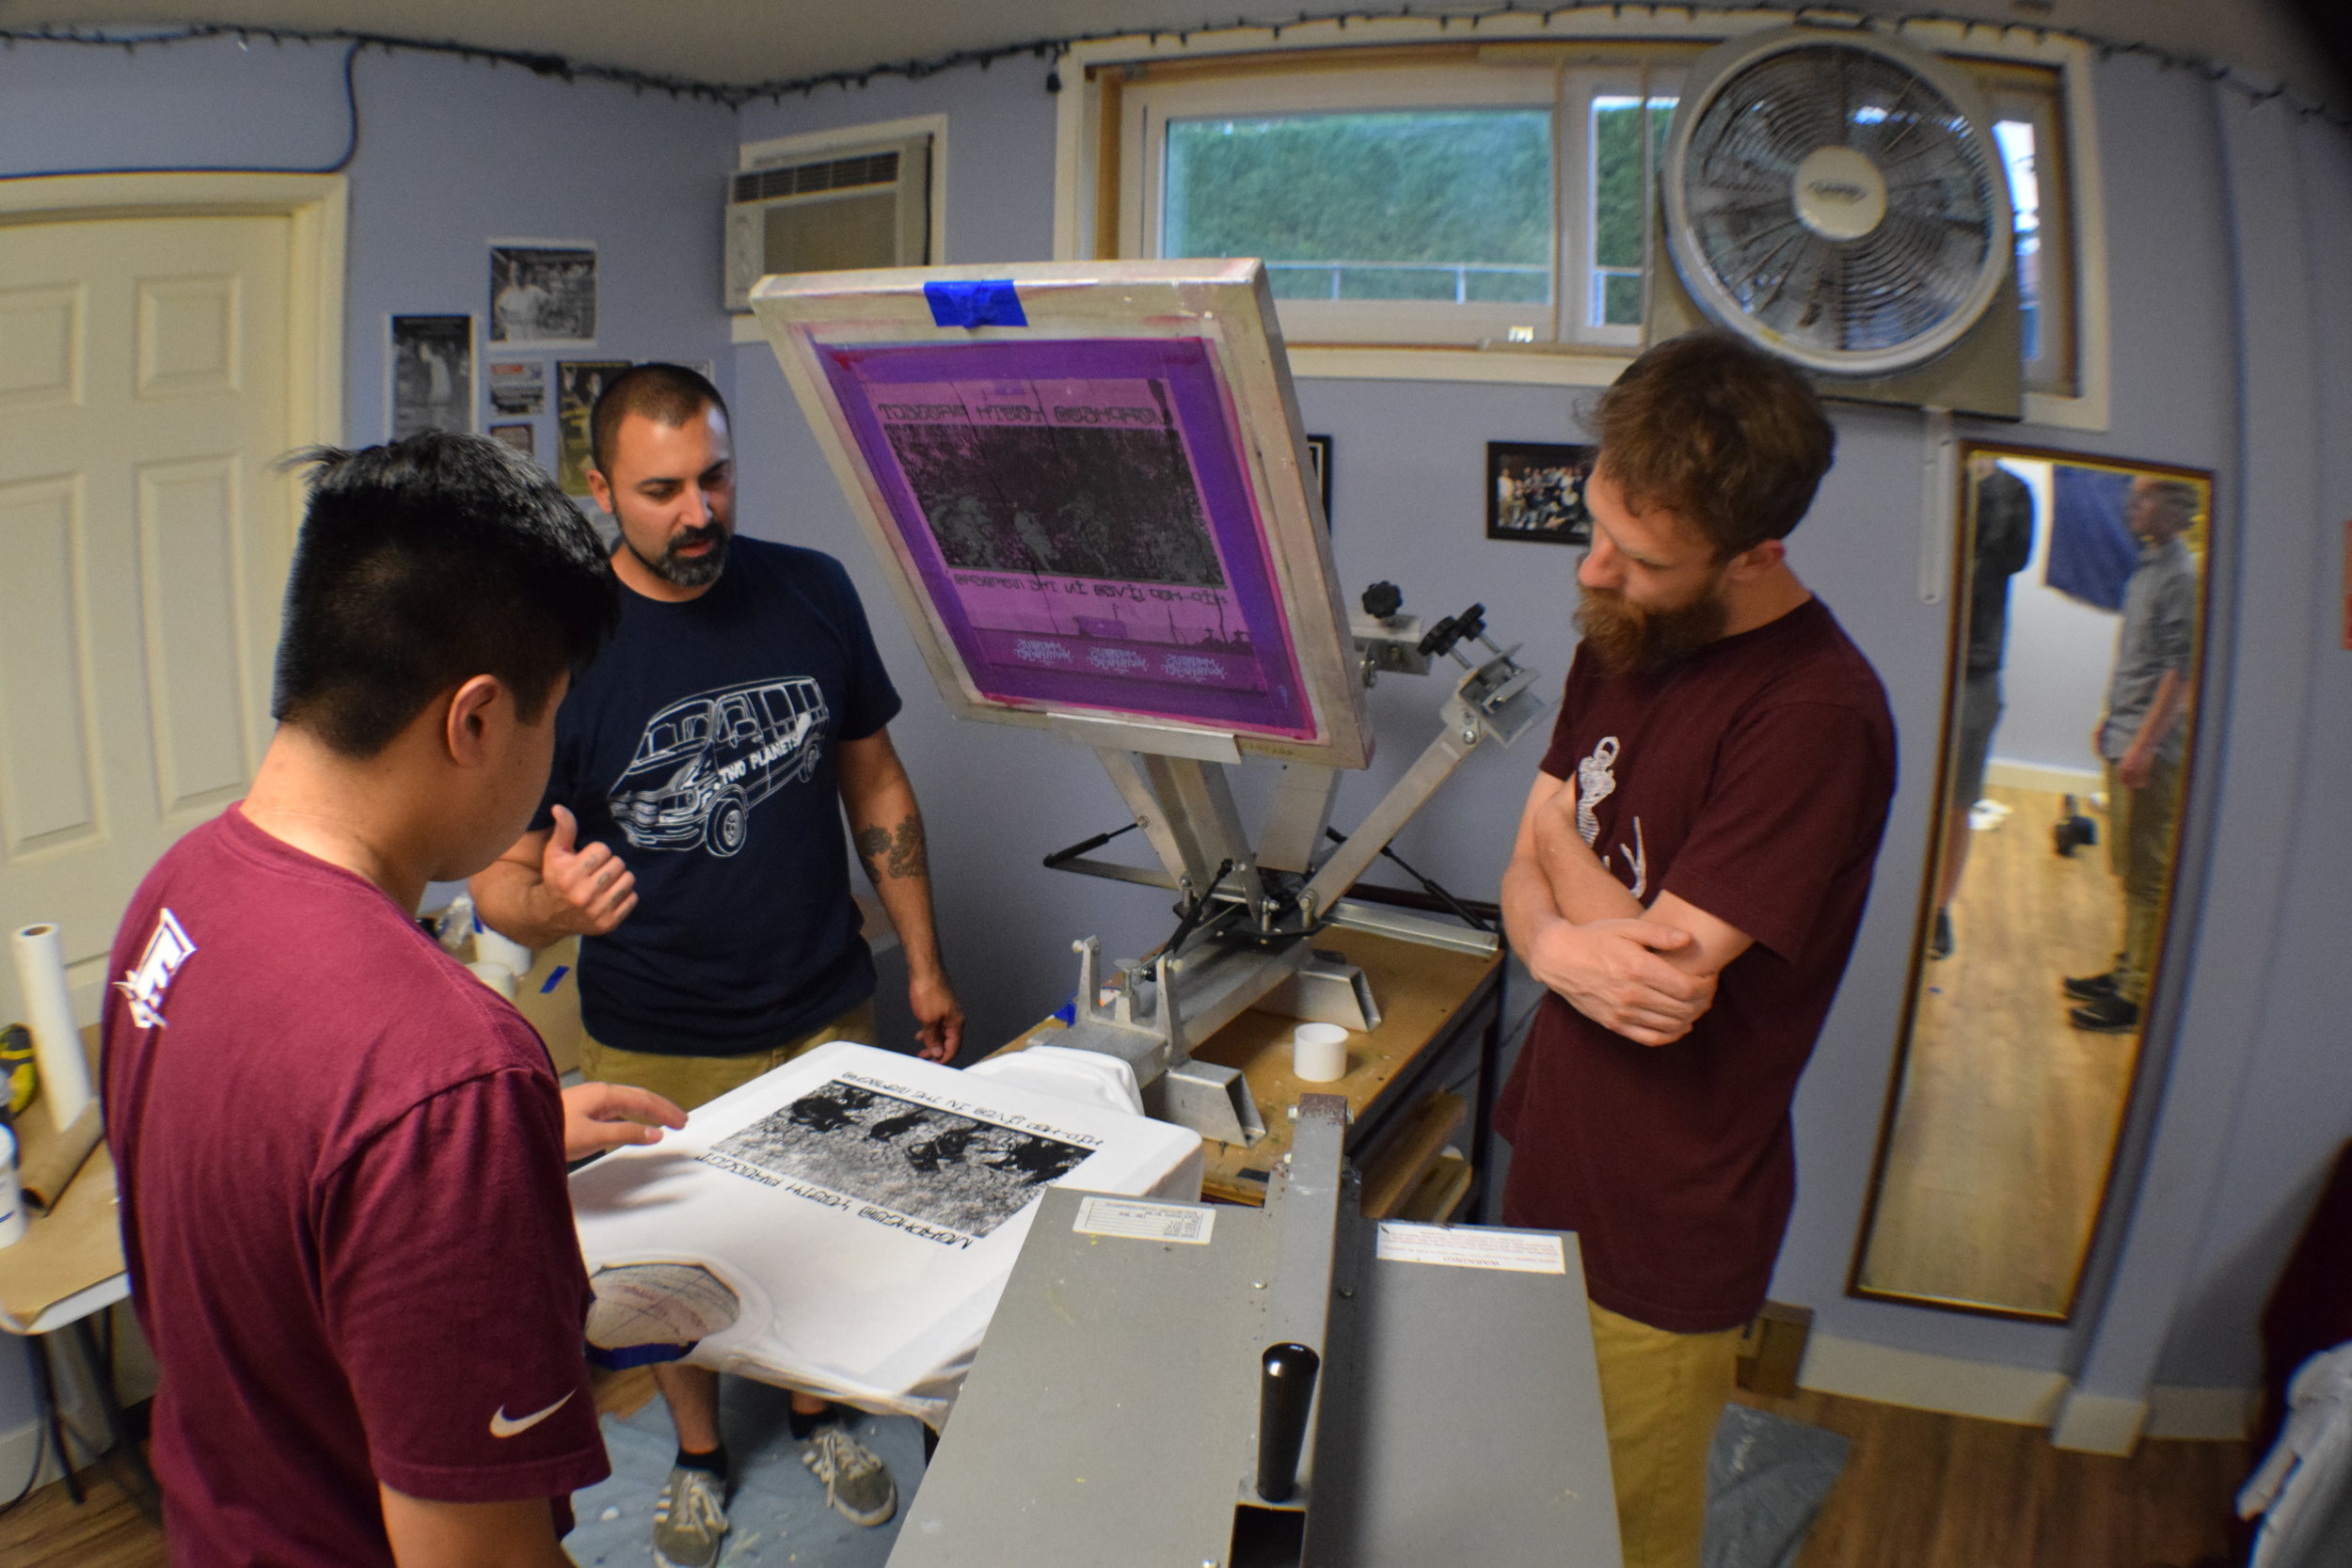 Youth have the opportunity to learn screen printing as a technical skill.